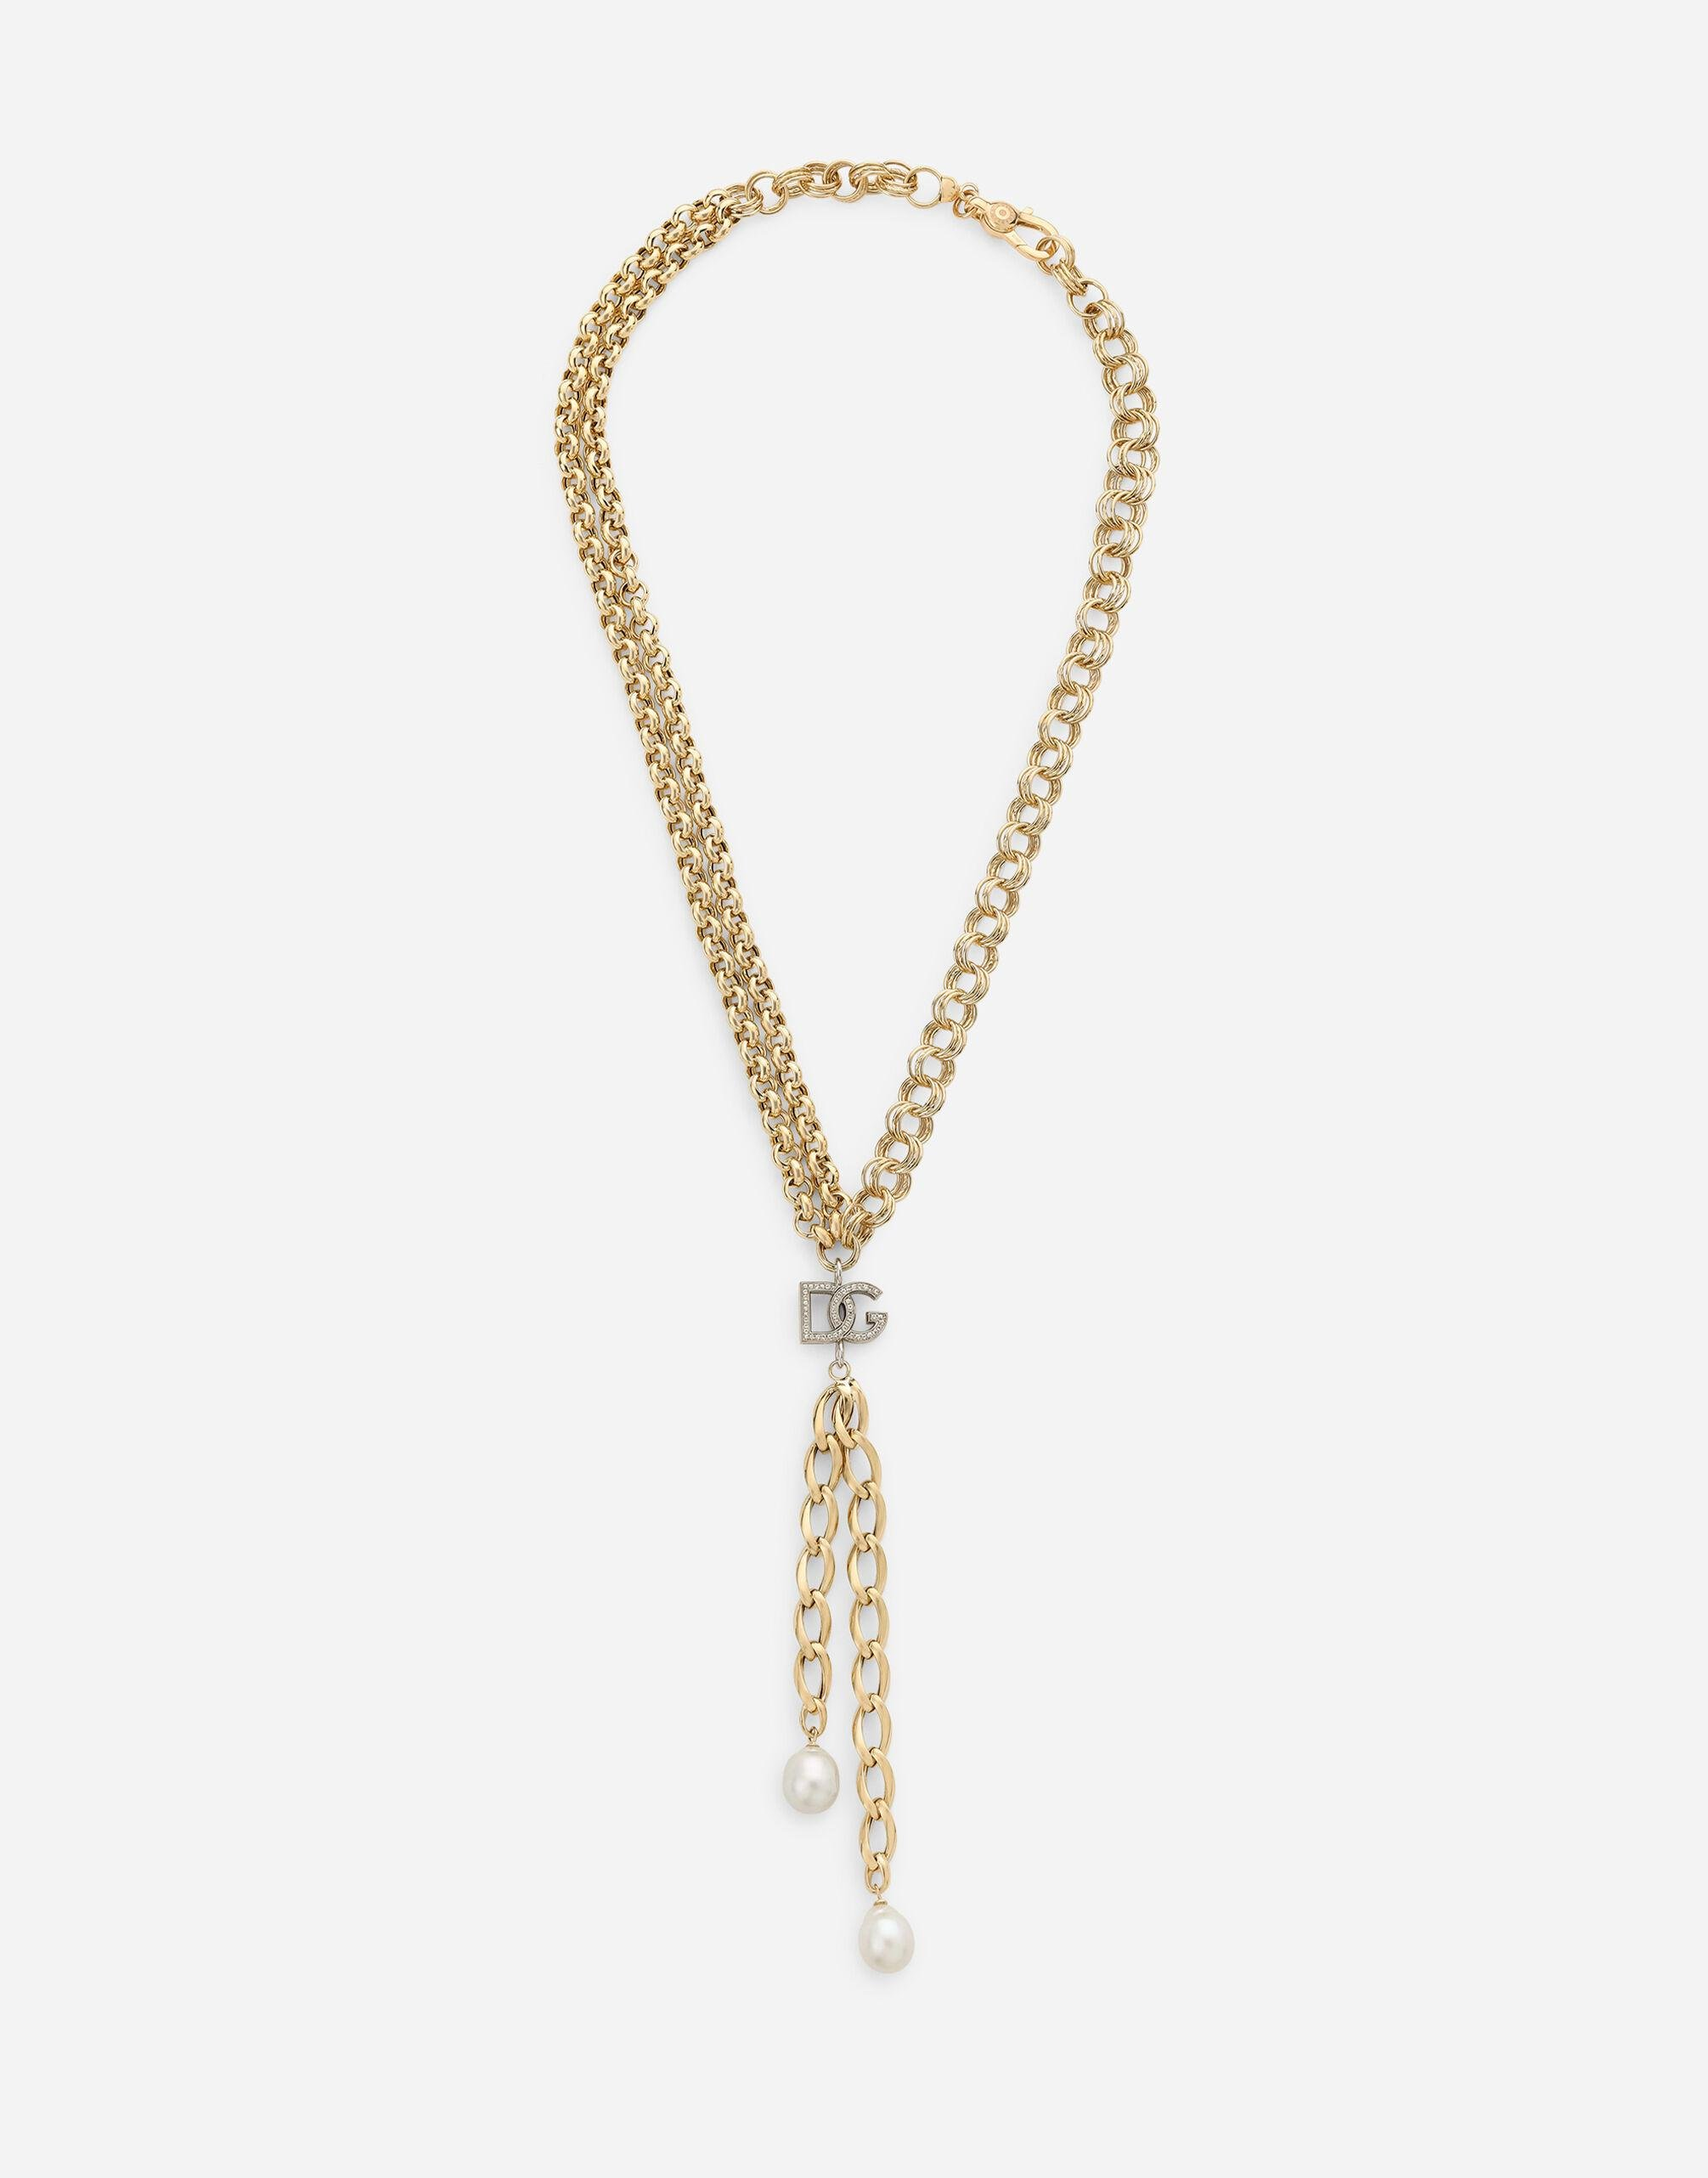 Logo necklace in yellow and white 18kt gold with colorless sapphires and pearls